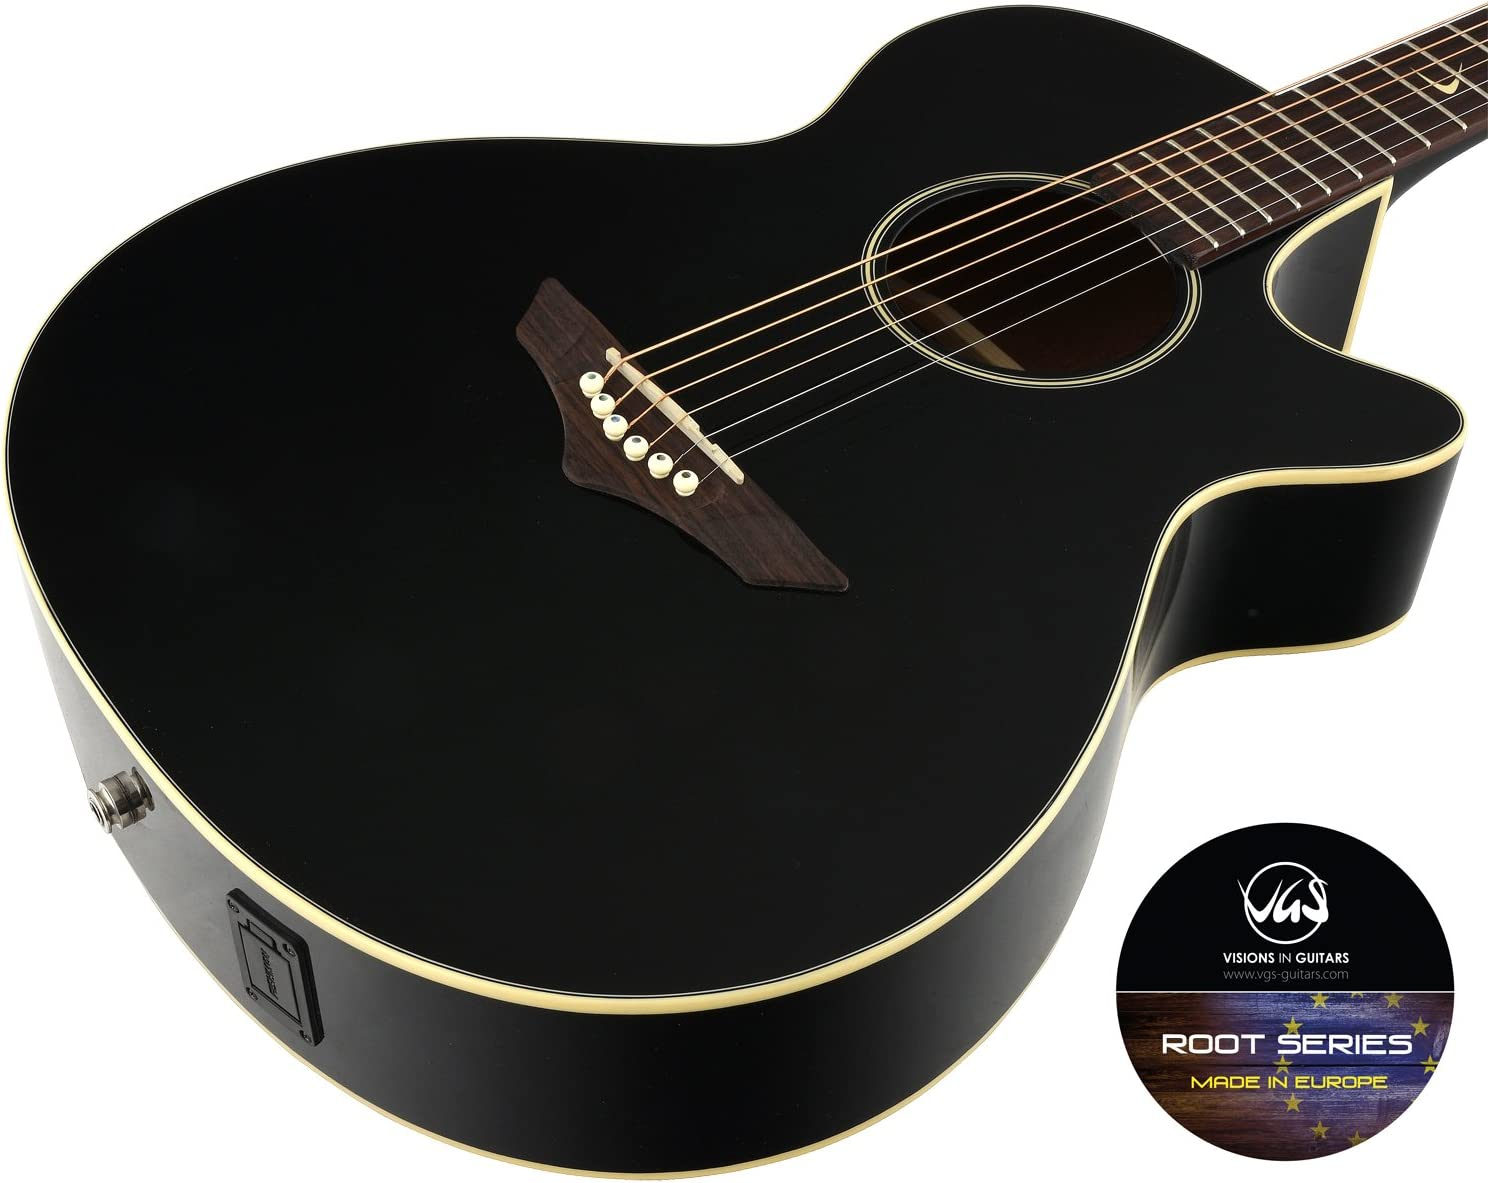 VGS RT-S Root - Guitarra acústica, color negro: Amazon.es ...